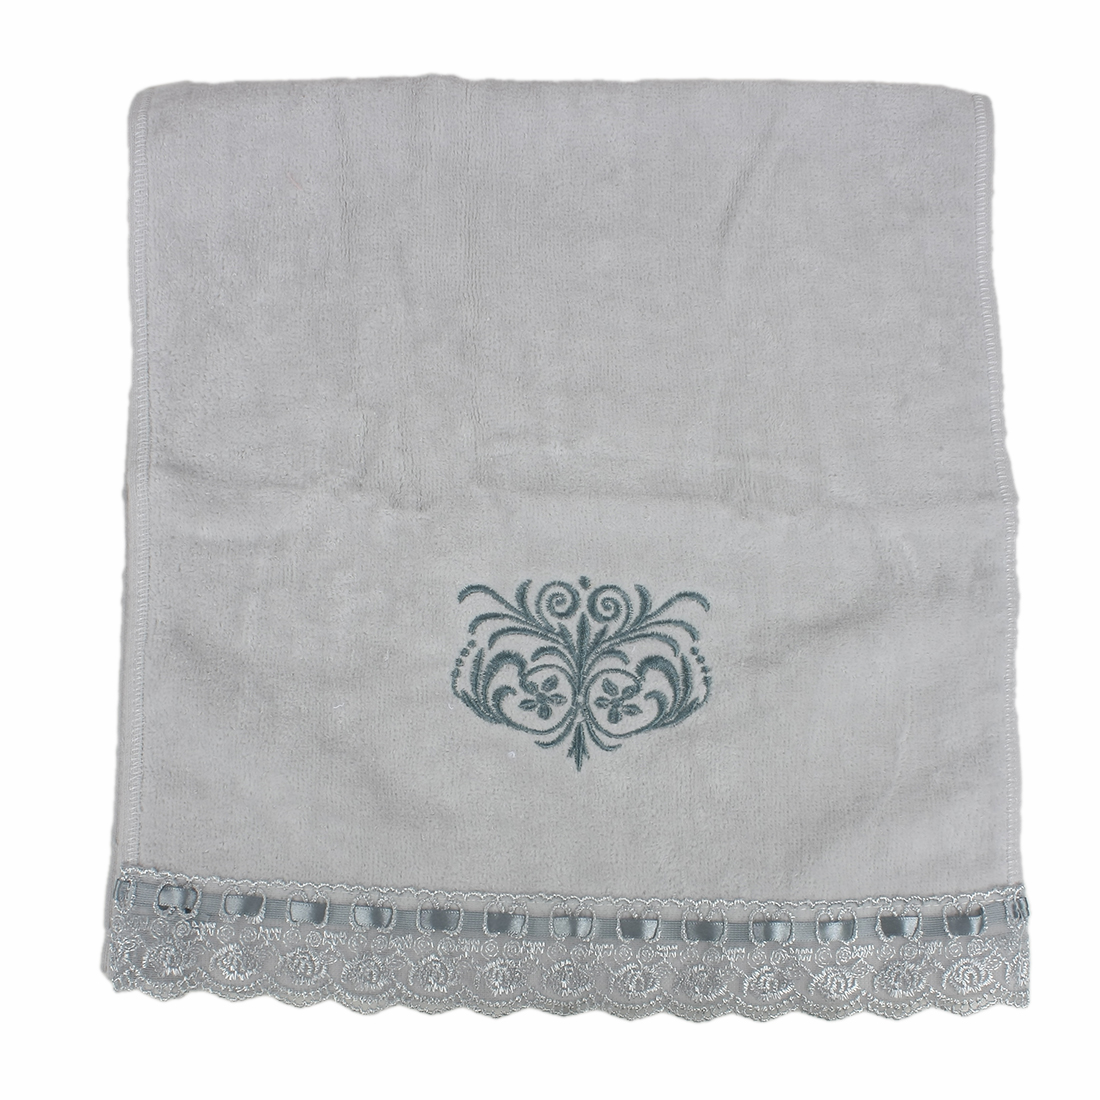 Embroidered Lace Rectangle Facecloth Cotton Towel 35 x 74cm